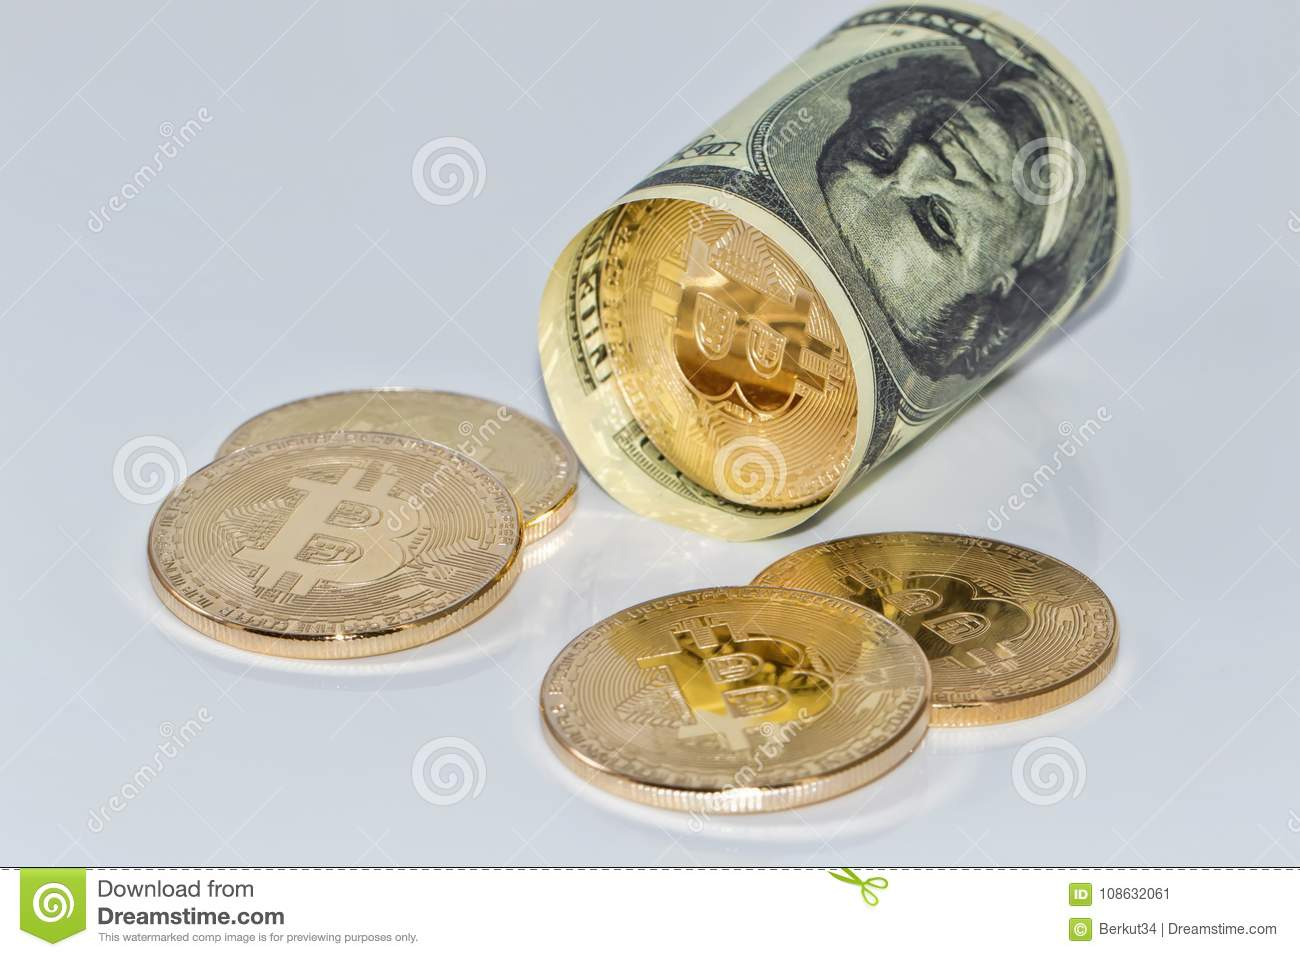 Exchange bitcoin for real money